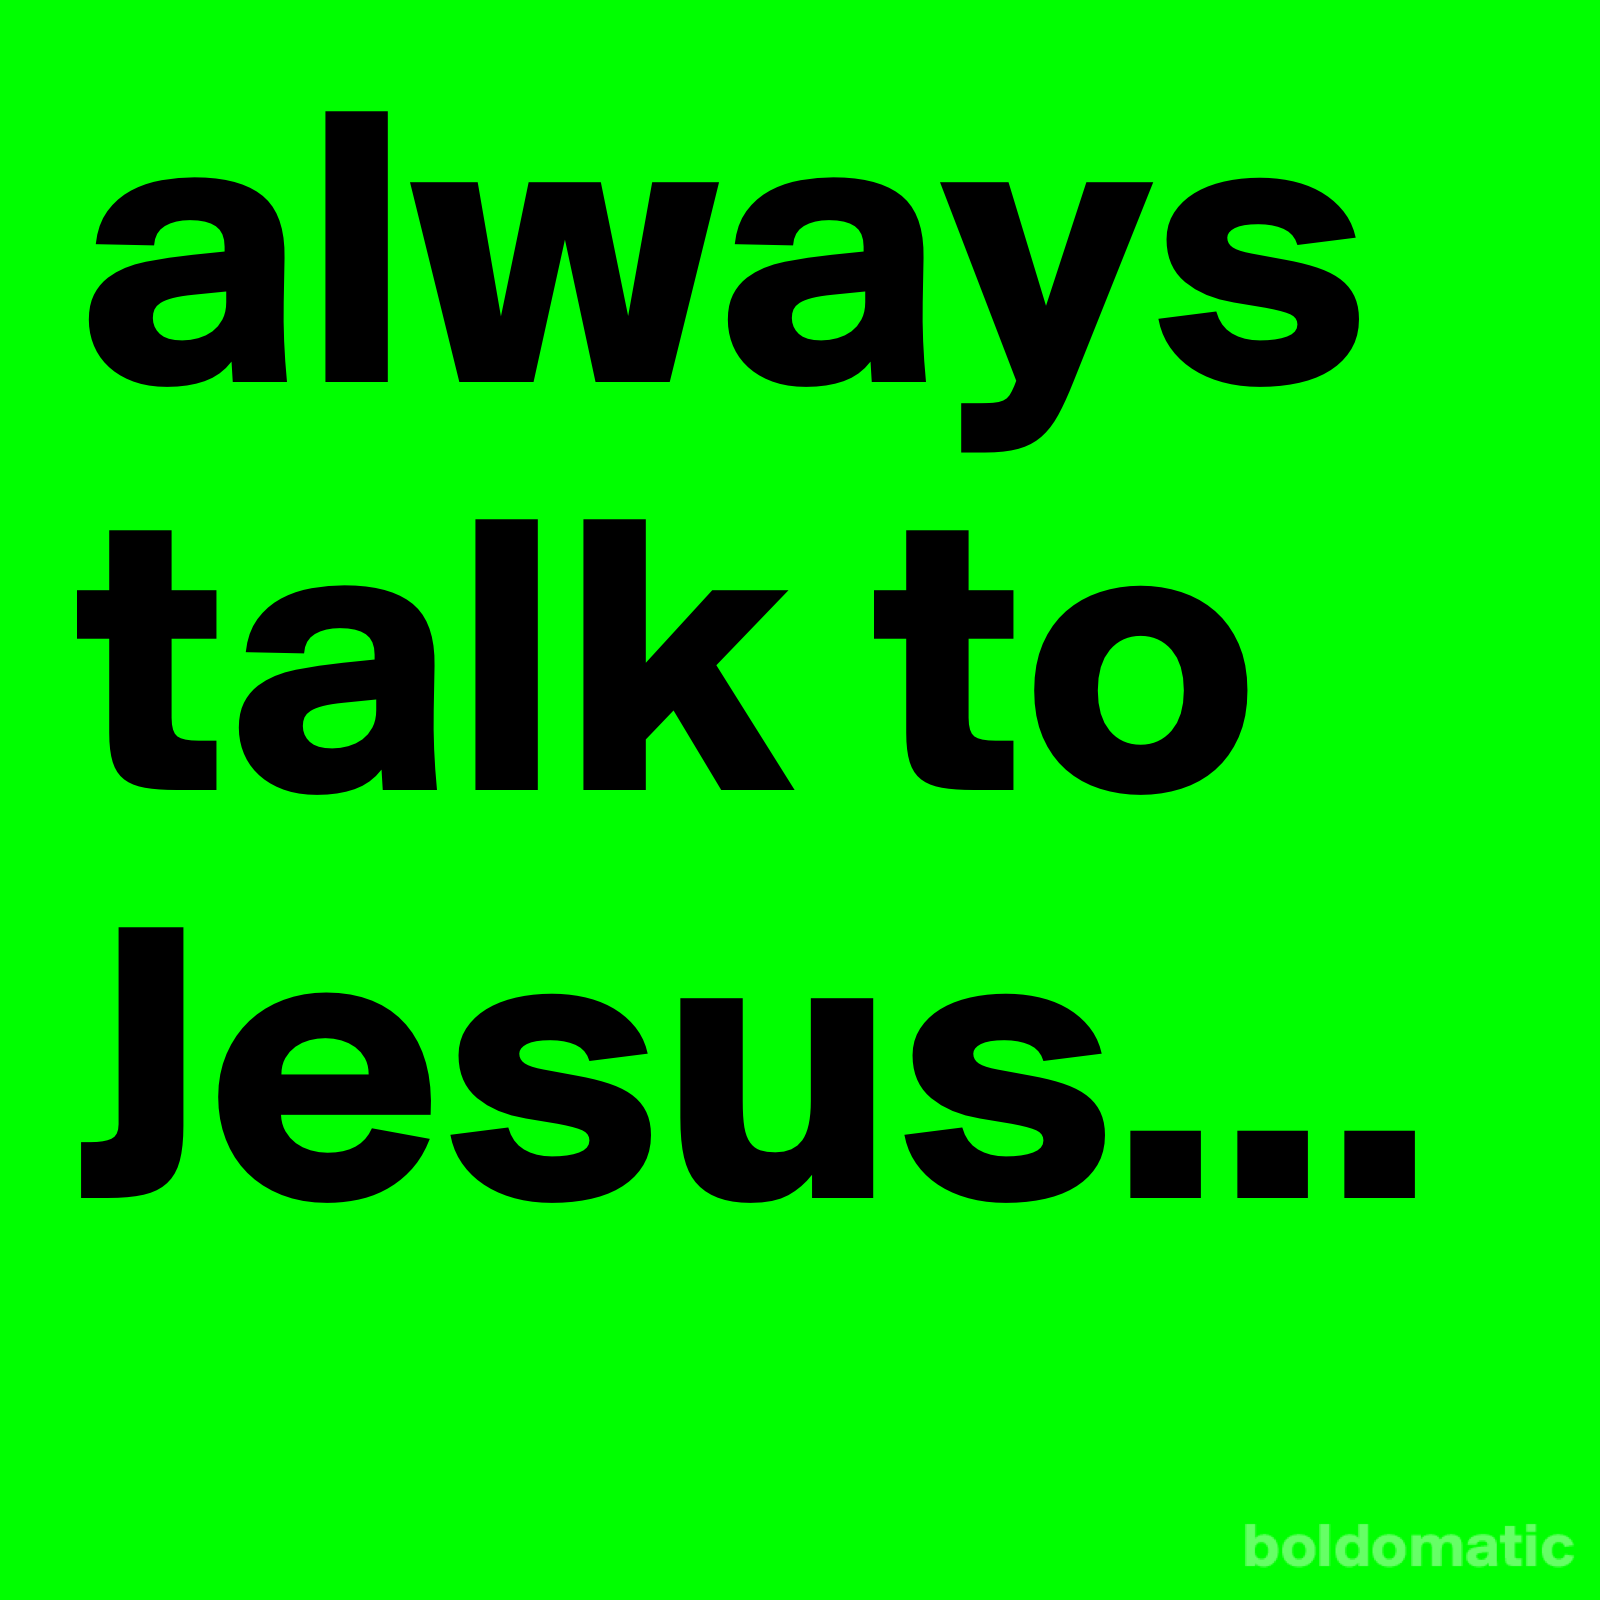 jesus Daily Quotes